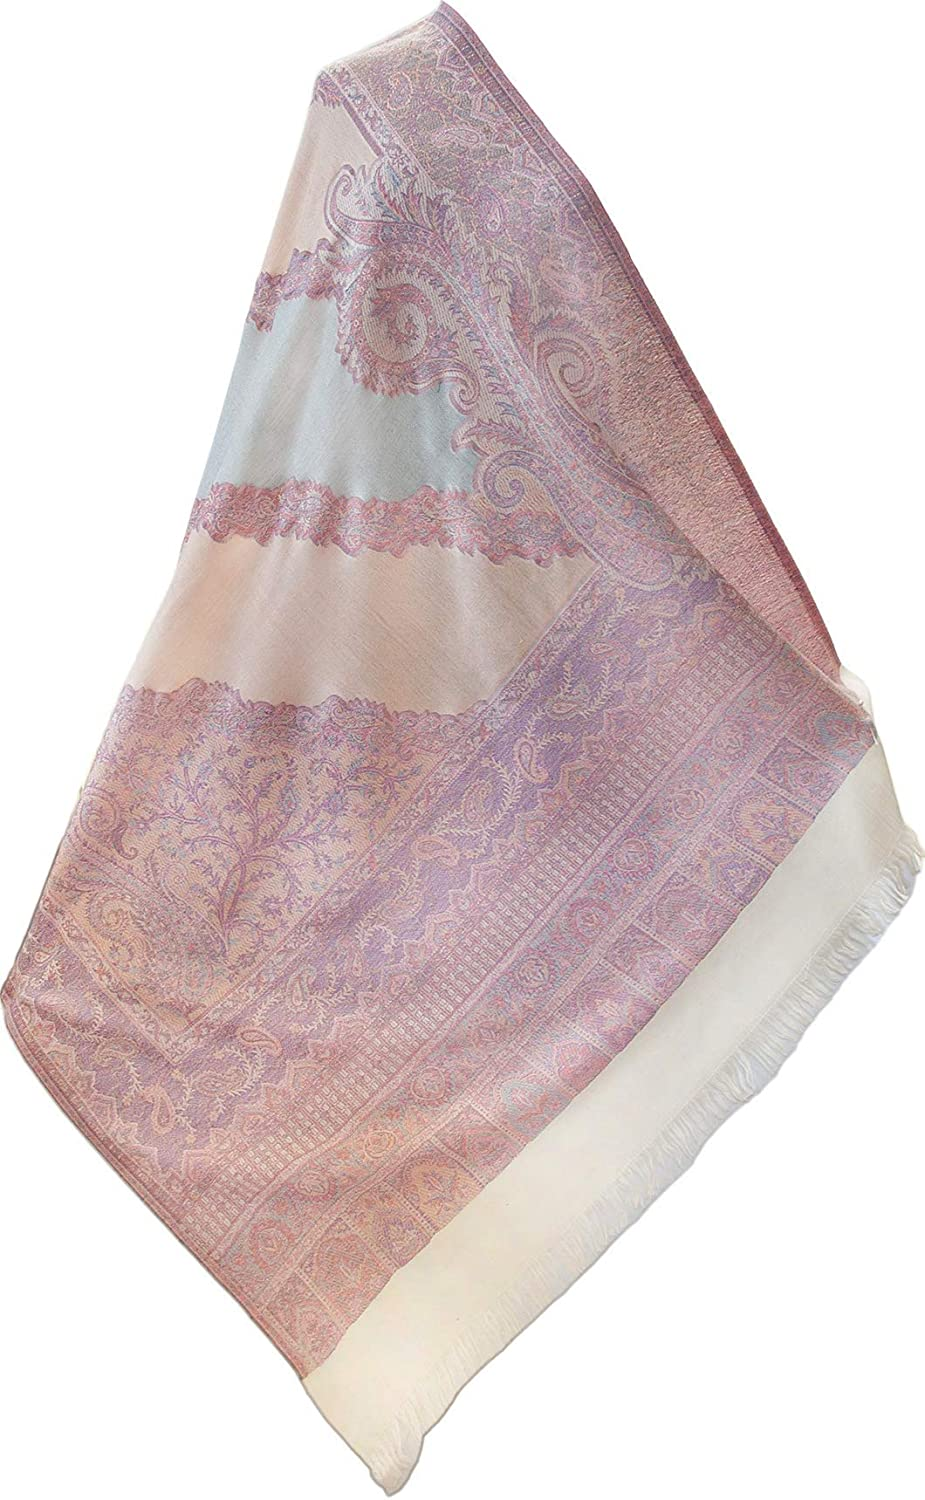 "Pastel Dusty Rose Soft Wool Jamavar Shawl. 80""x 40"" Moghul Paisley Pashmina Wrap"